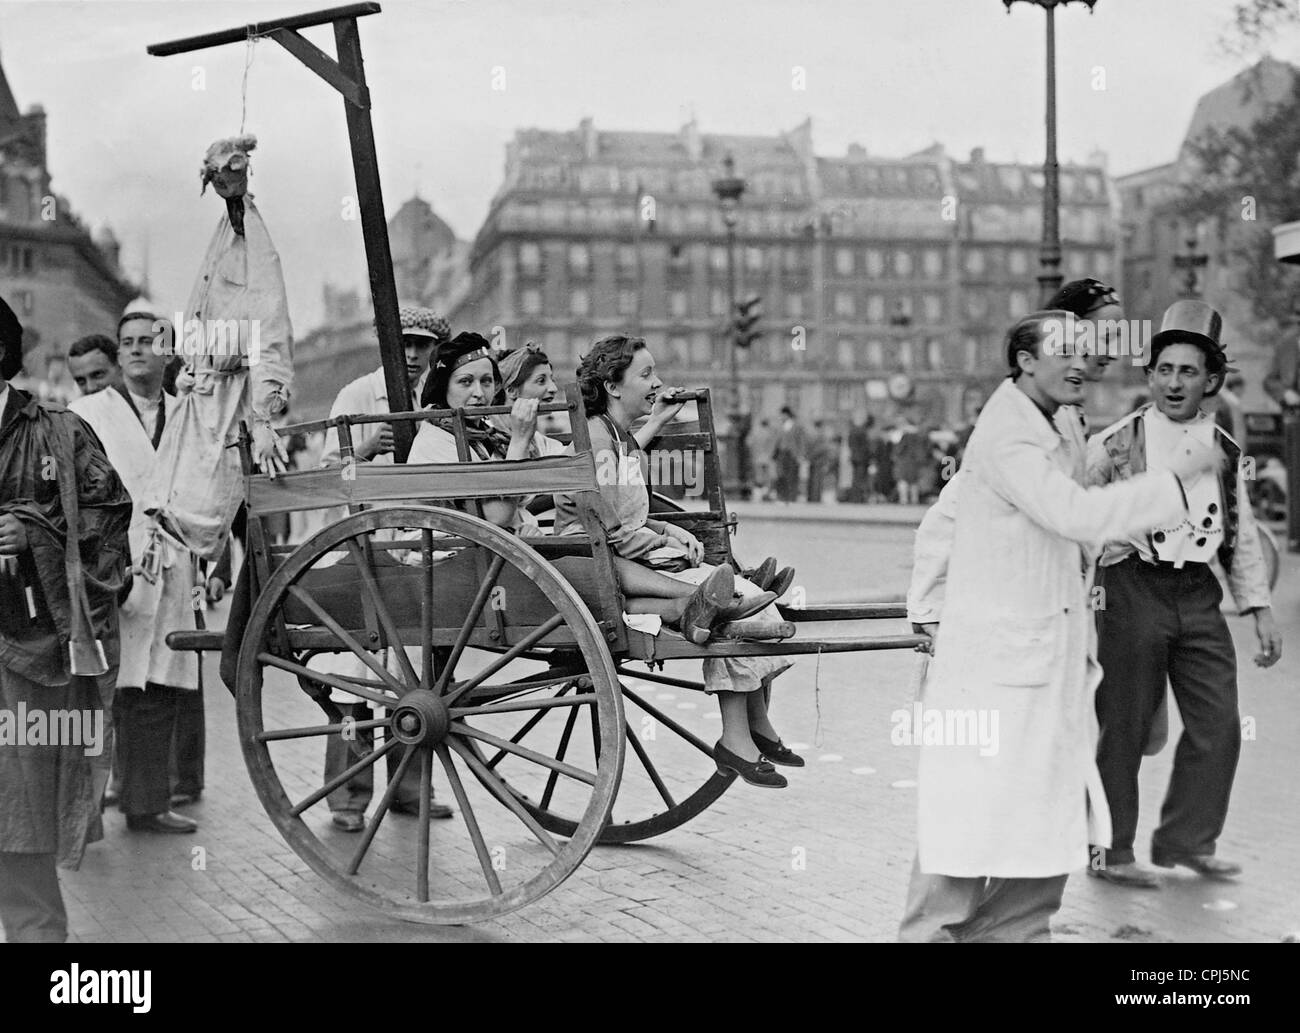 A group of pharmacy students in the Latin Quarter, 1938 - Stock Image